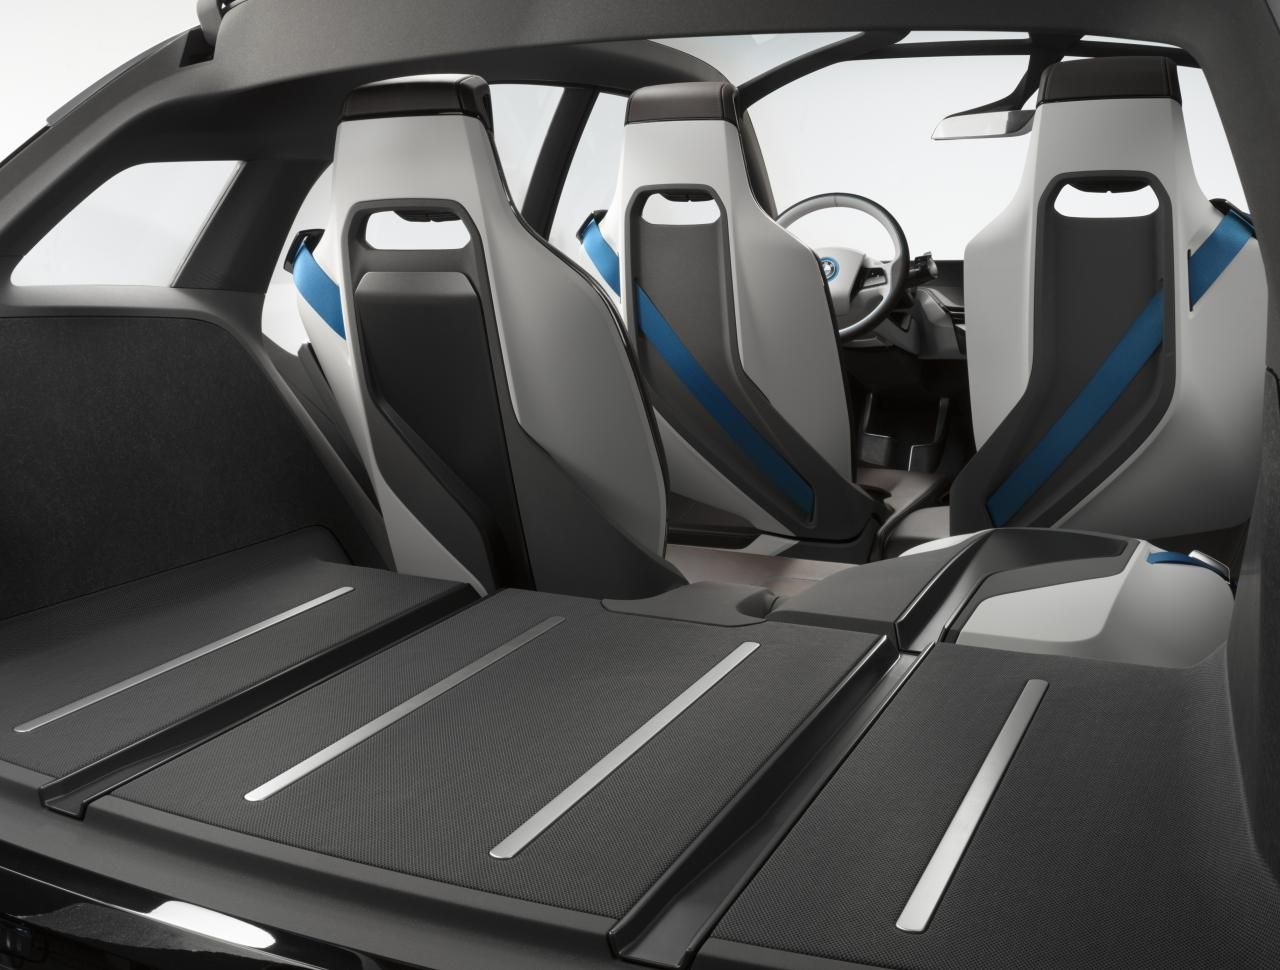 2011 BMW i3 Concept | BMW | Pinterest | Bmw i3 and BMW